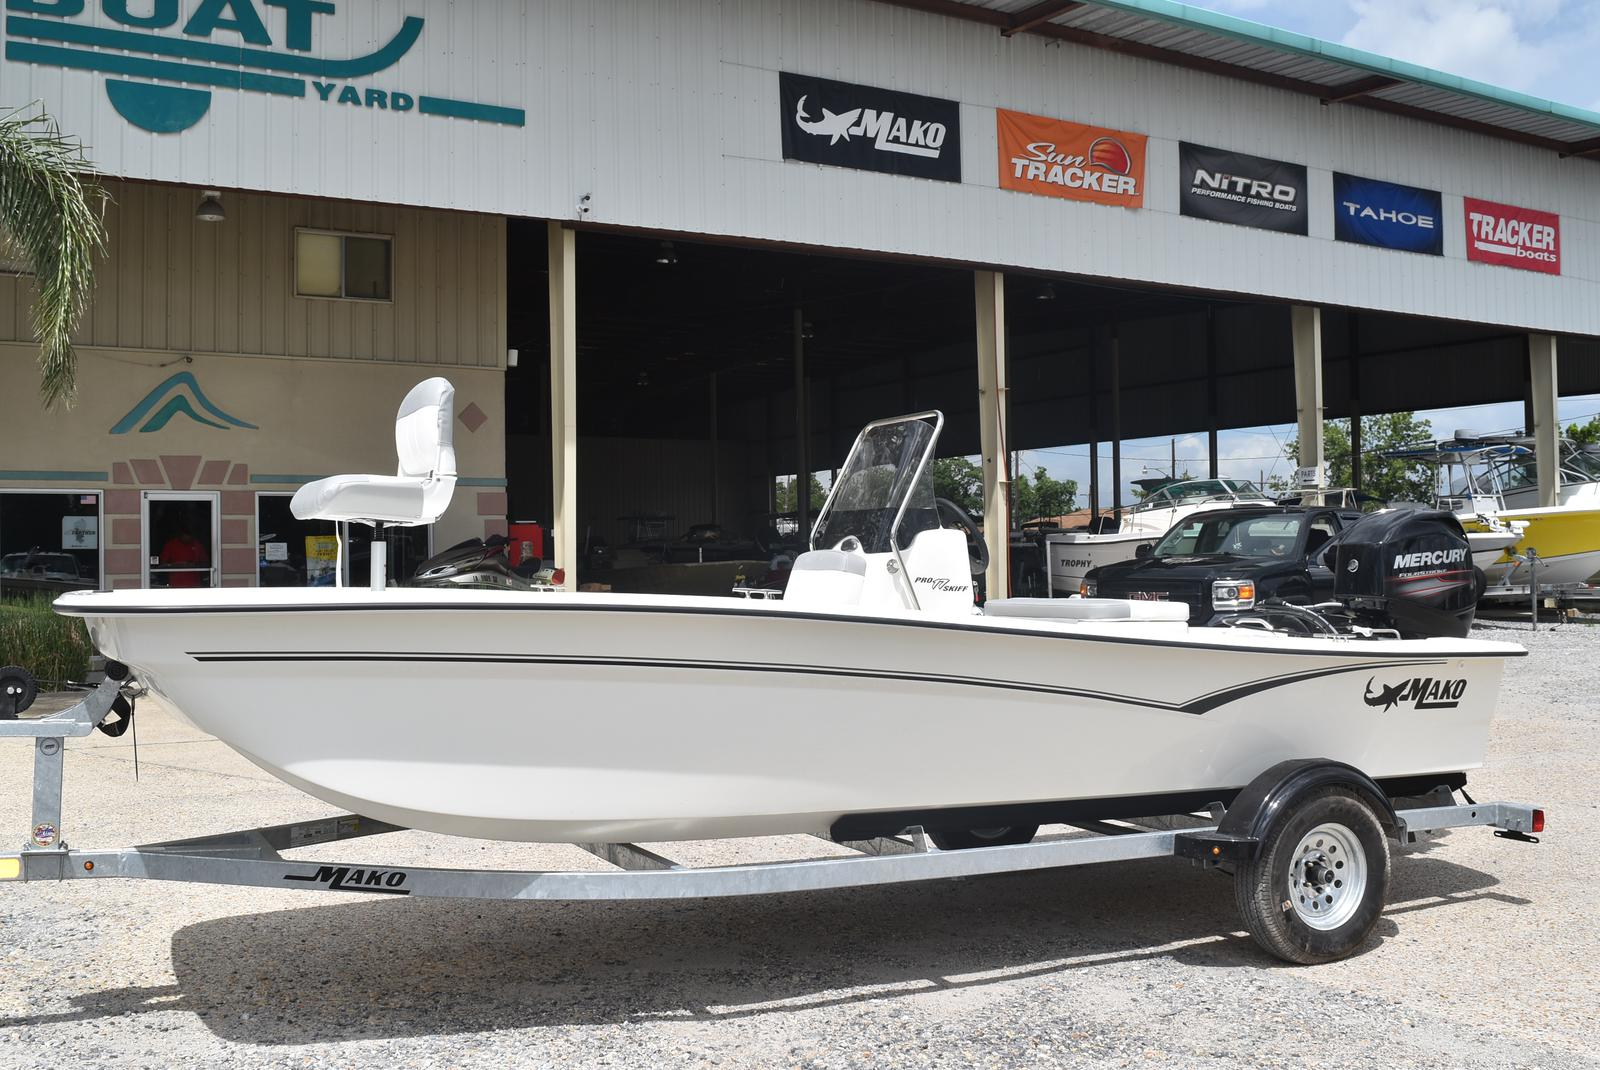 2020 Mako boat for sale, model of the boat is Pro Skiff 17, 75 ELPT & Image # 86 of 702